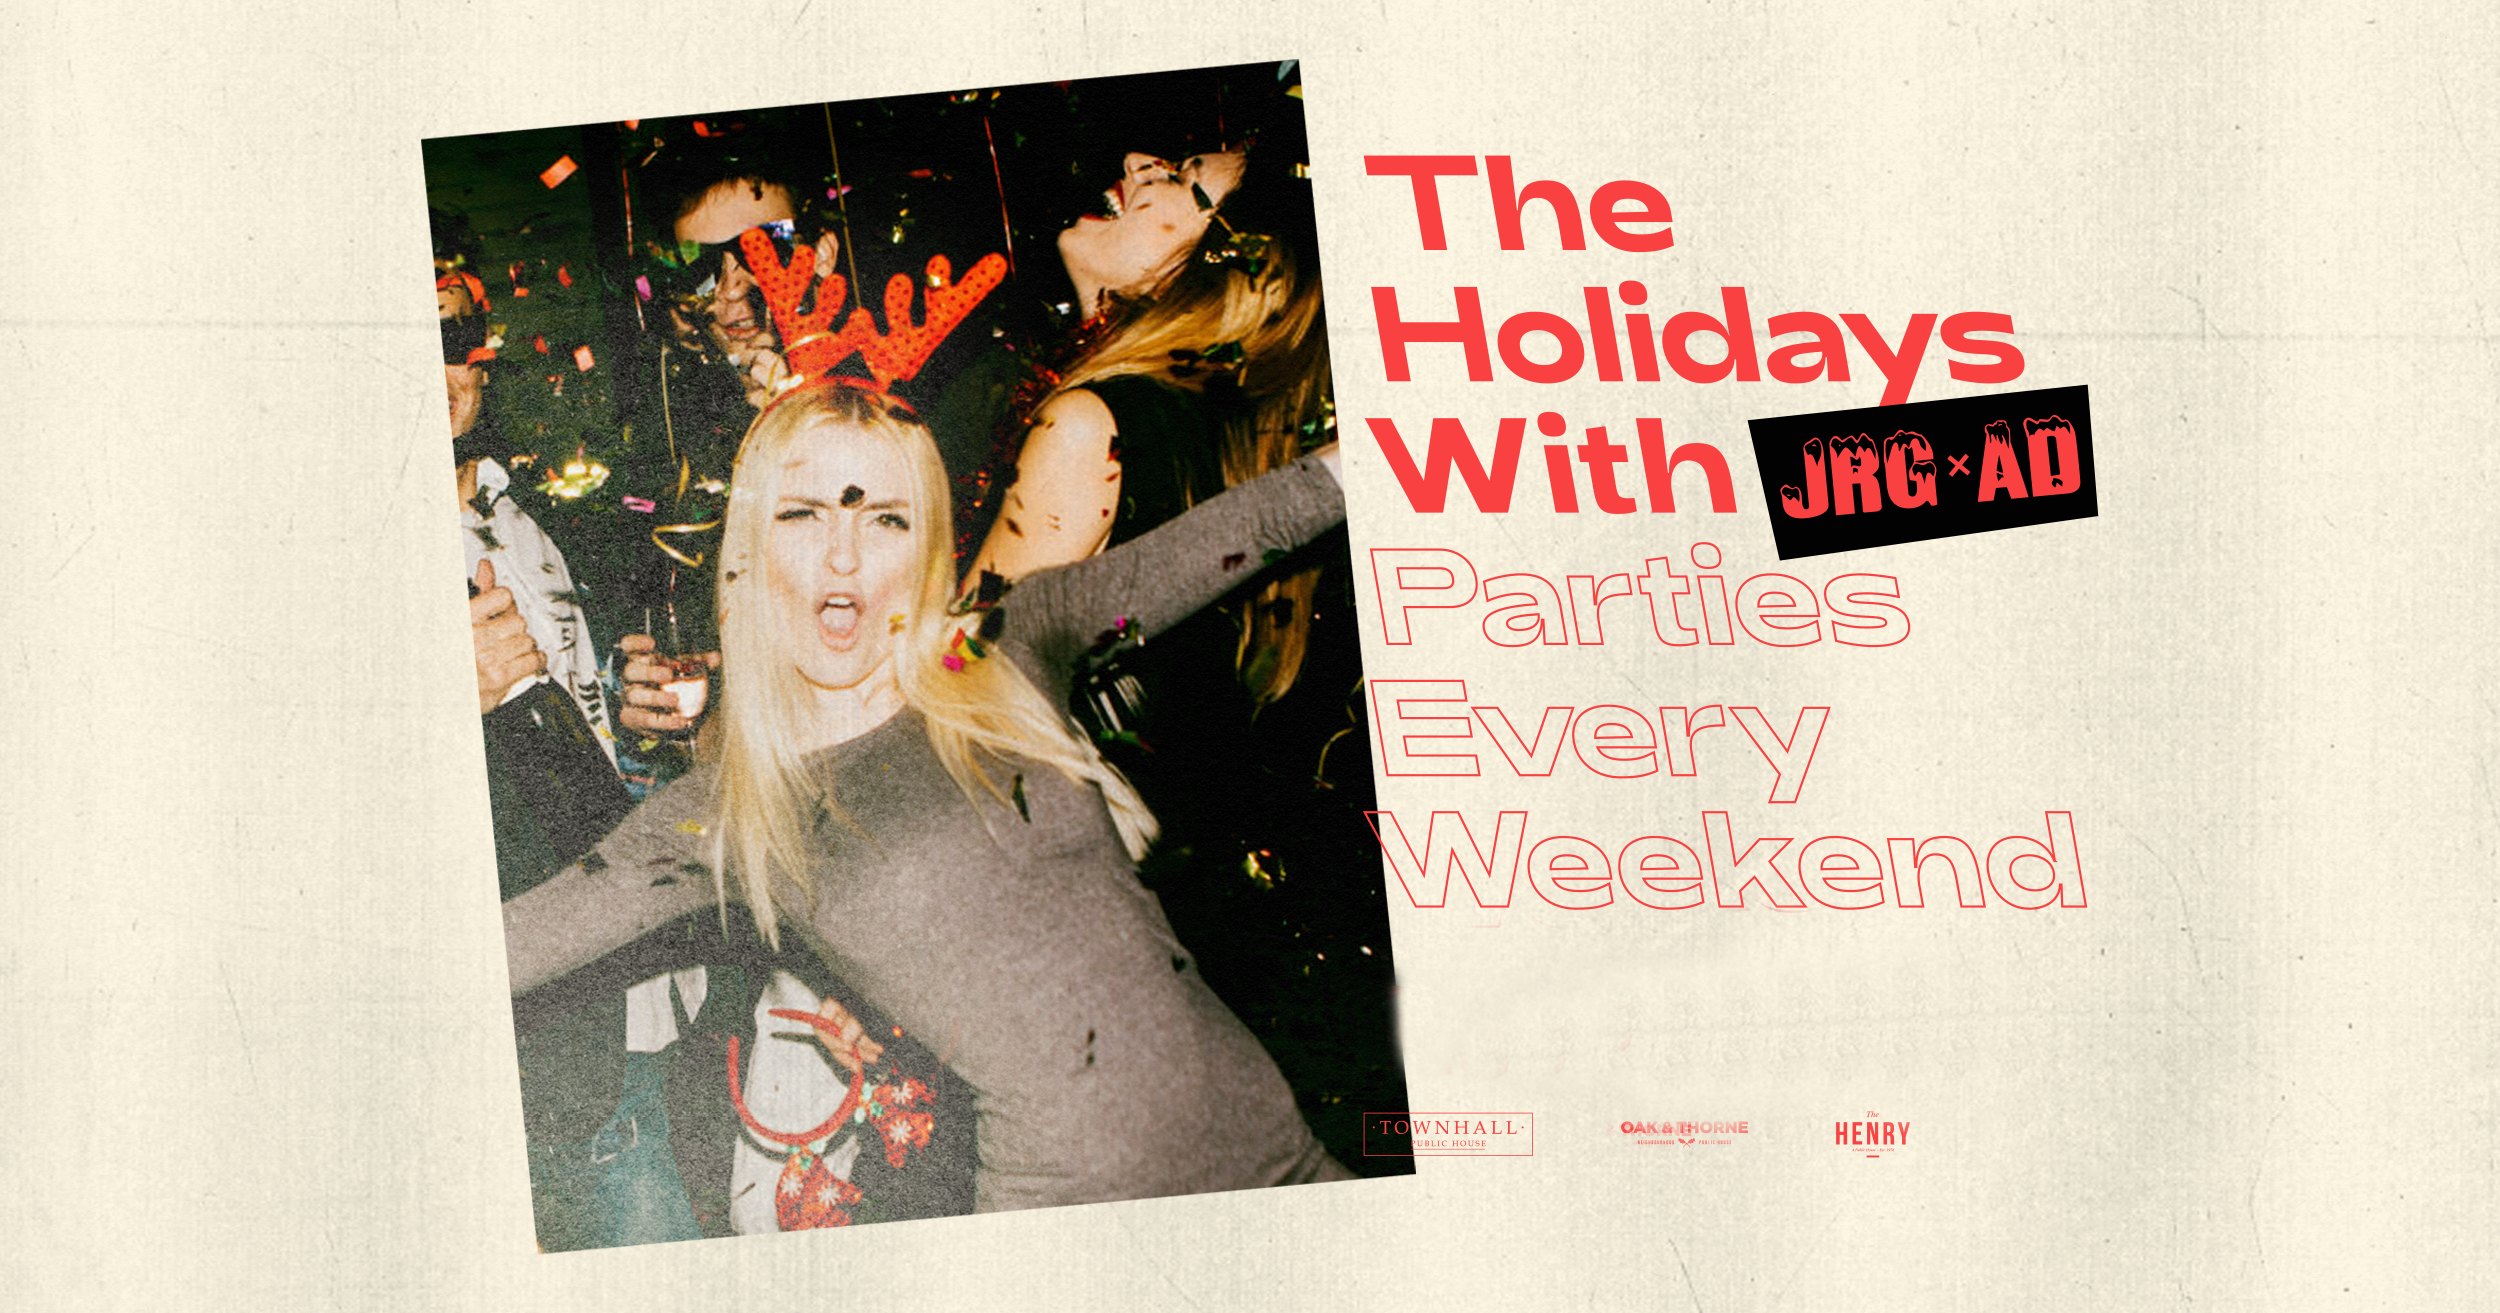 The Holidays with JRG After Dark